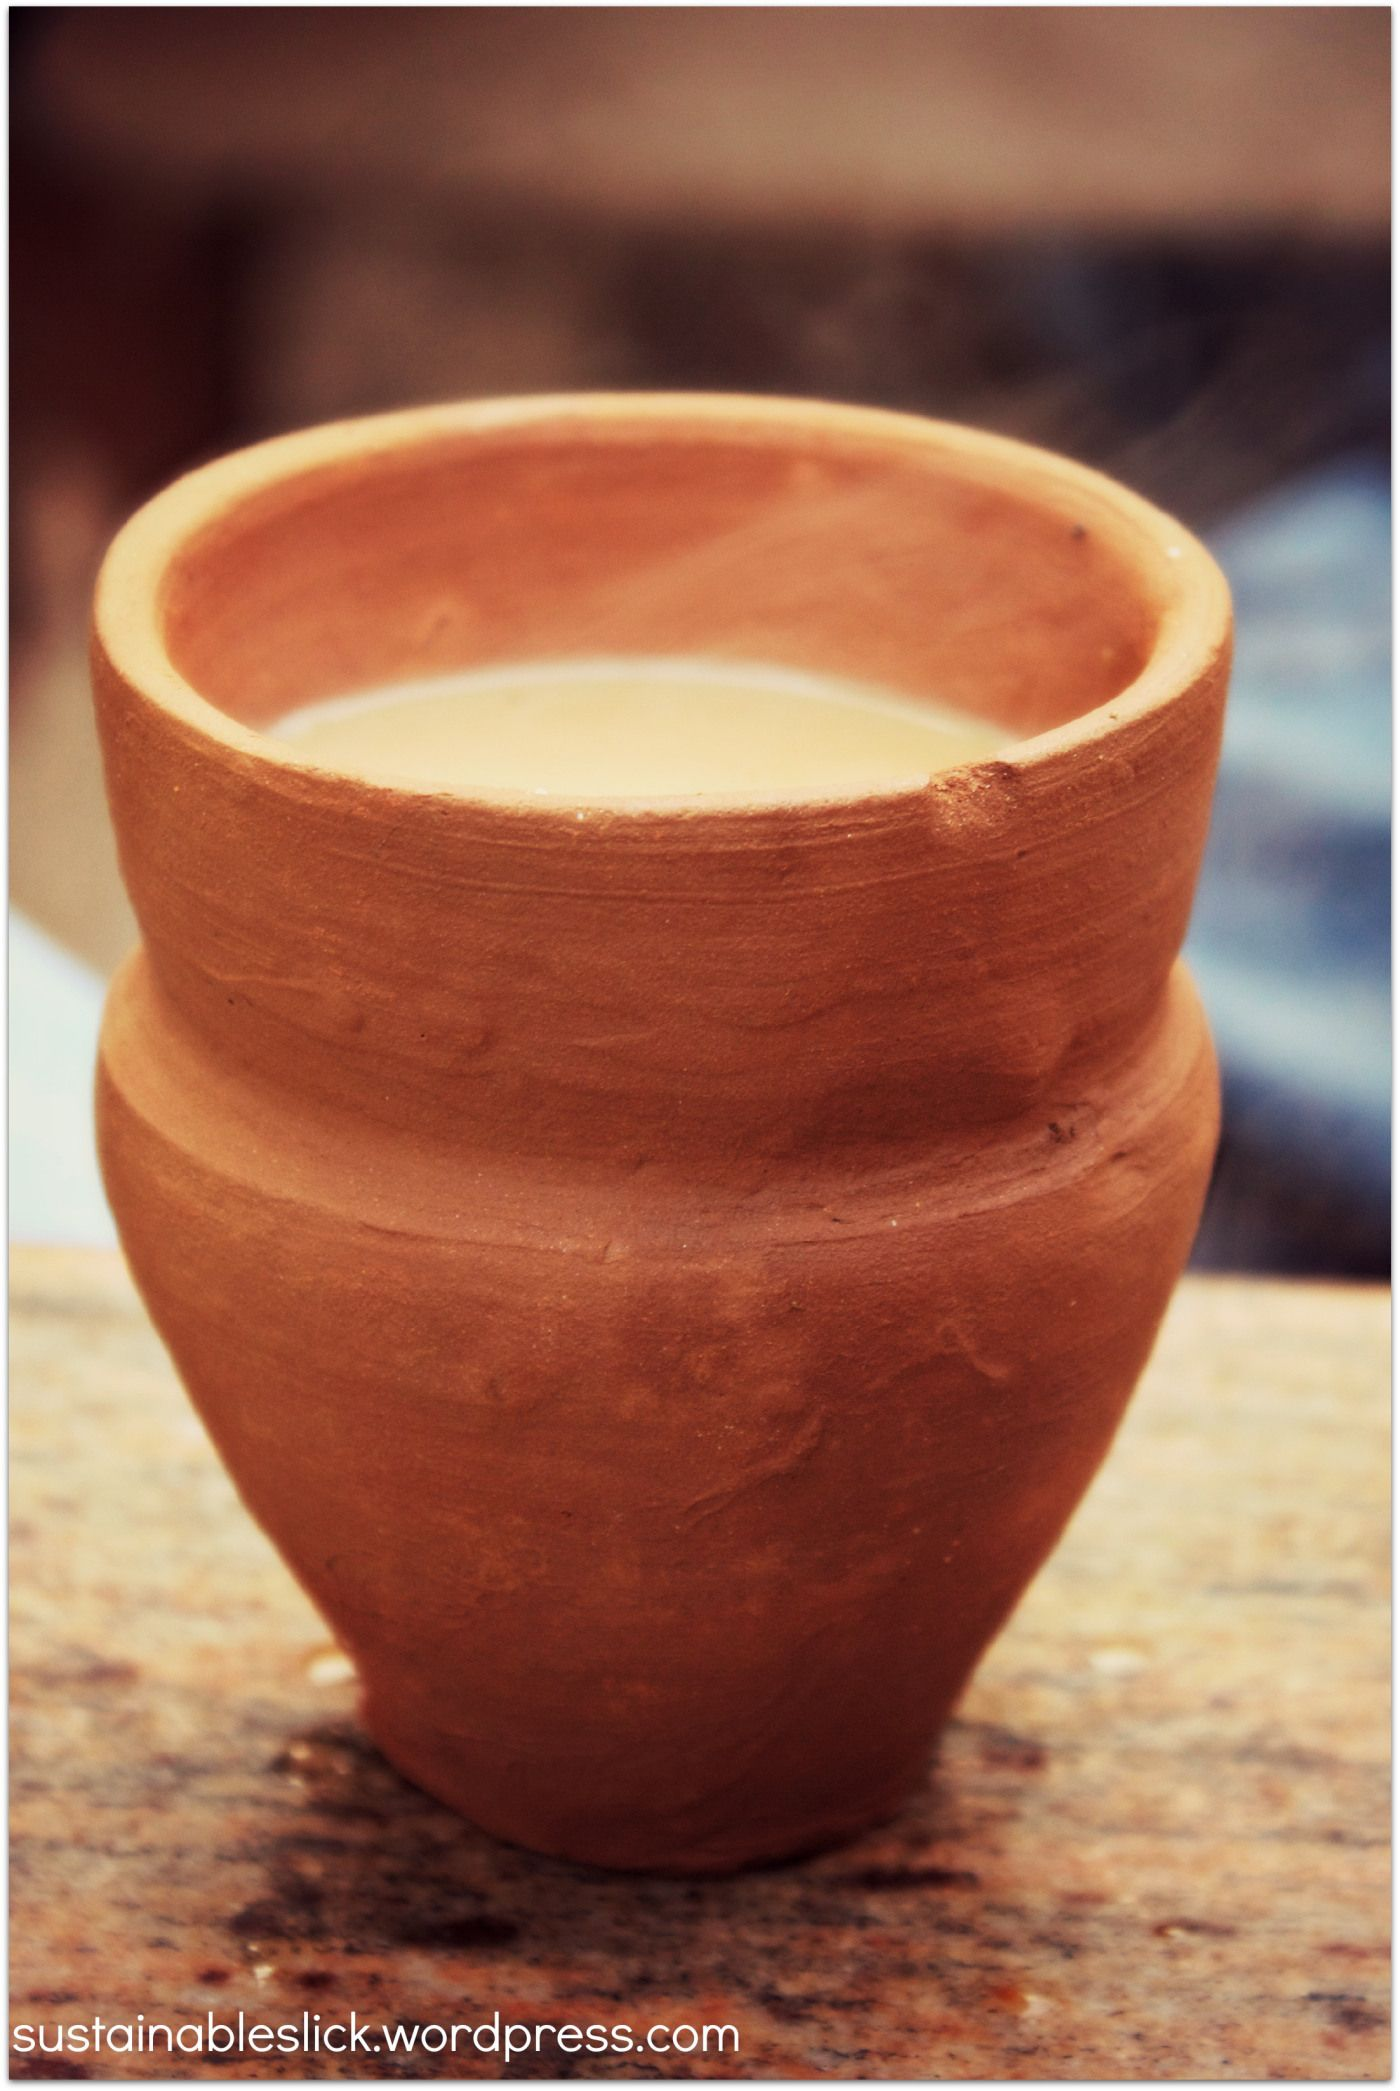 EcoFriendly Clay Tea Cups from India Tea recipes, Tea